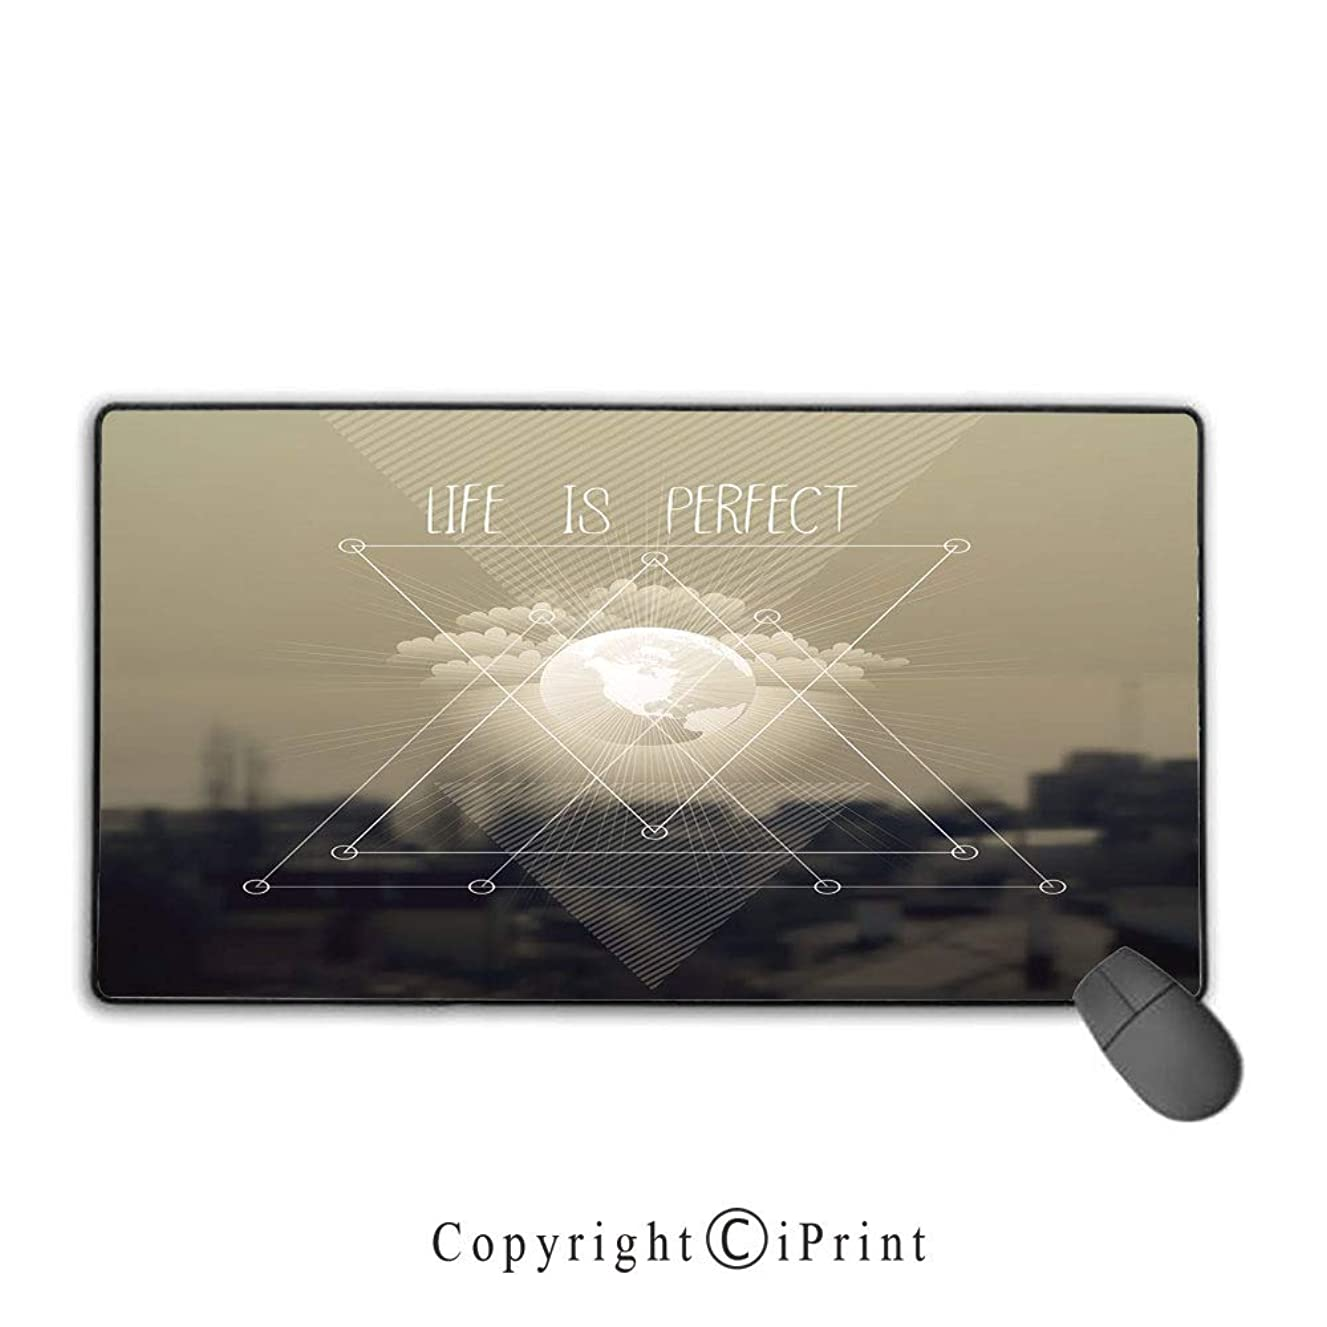 Mouse pad with Lock,Indie,Life is Perfect Inspirational Geometric Triangles Cityscape Clouds Earth,Tan Dark Taupe White,Suitable for laptops, Computers, PCs, Keyboards,9.8